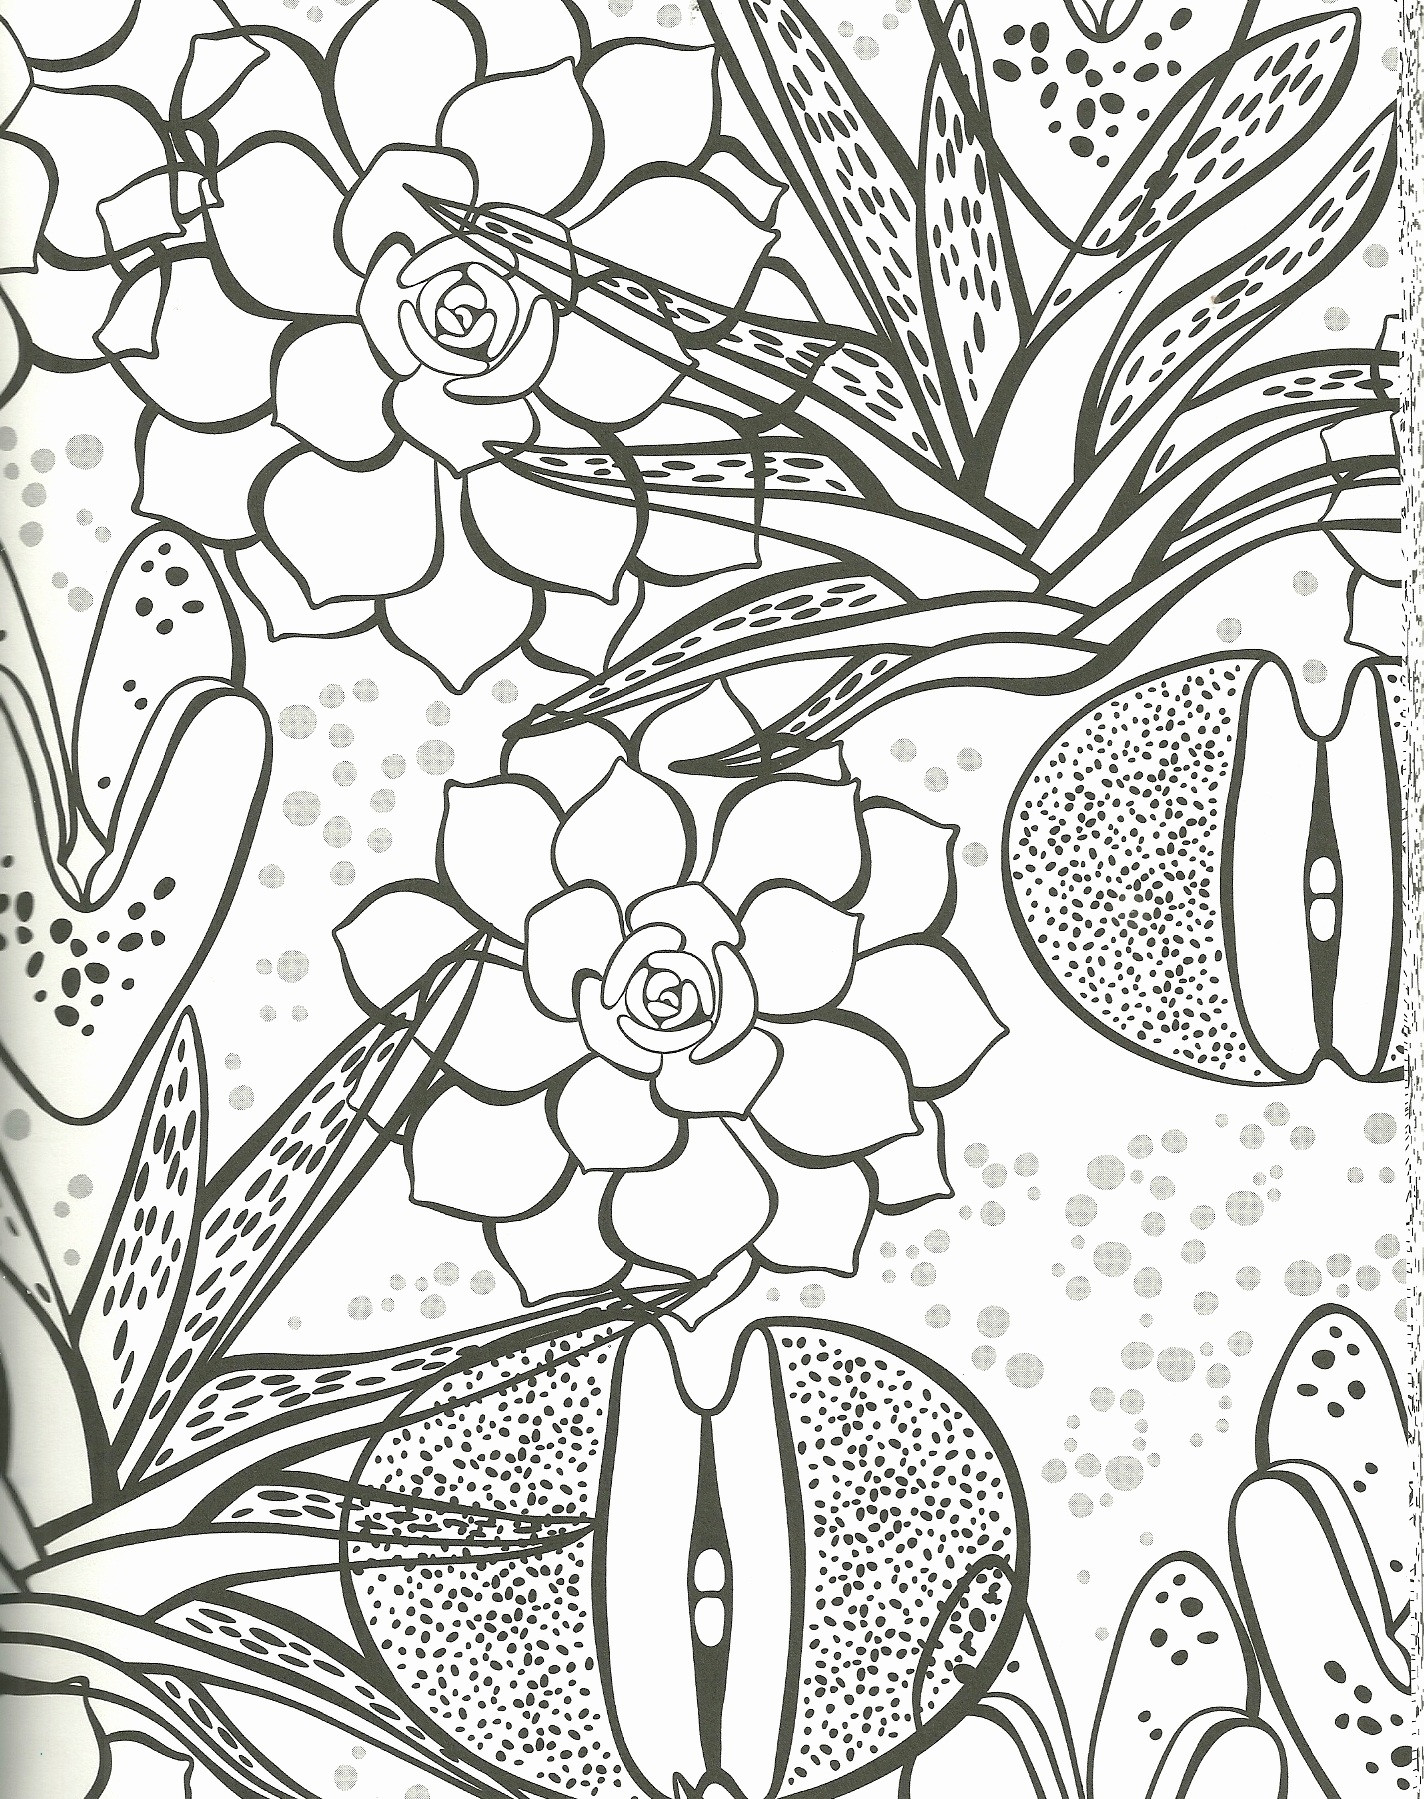 flowers in a vase of flowers coloring pages update cool vases flower vase coloring page intended for download image